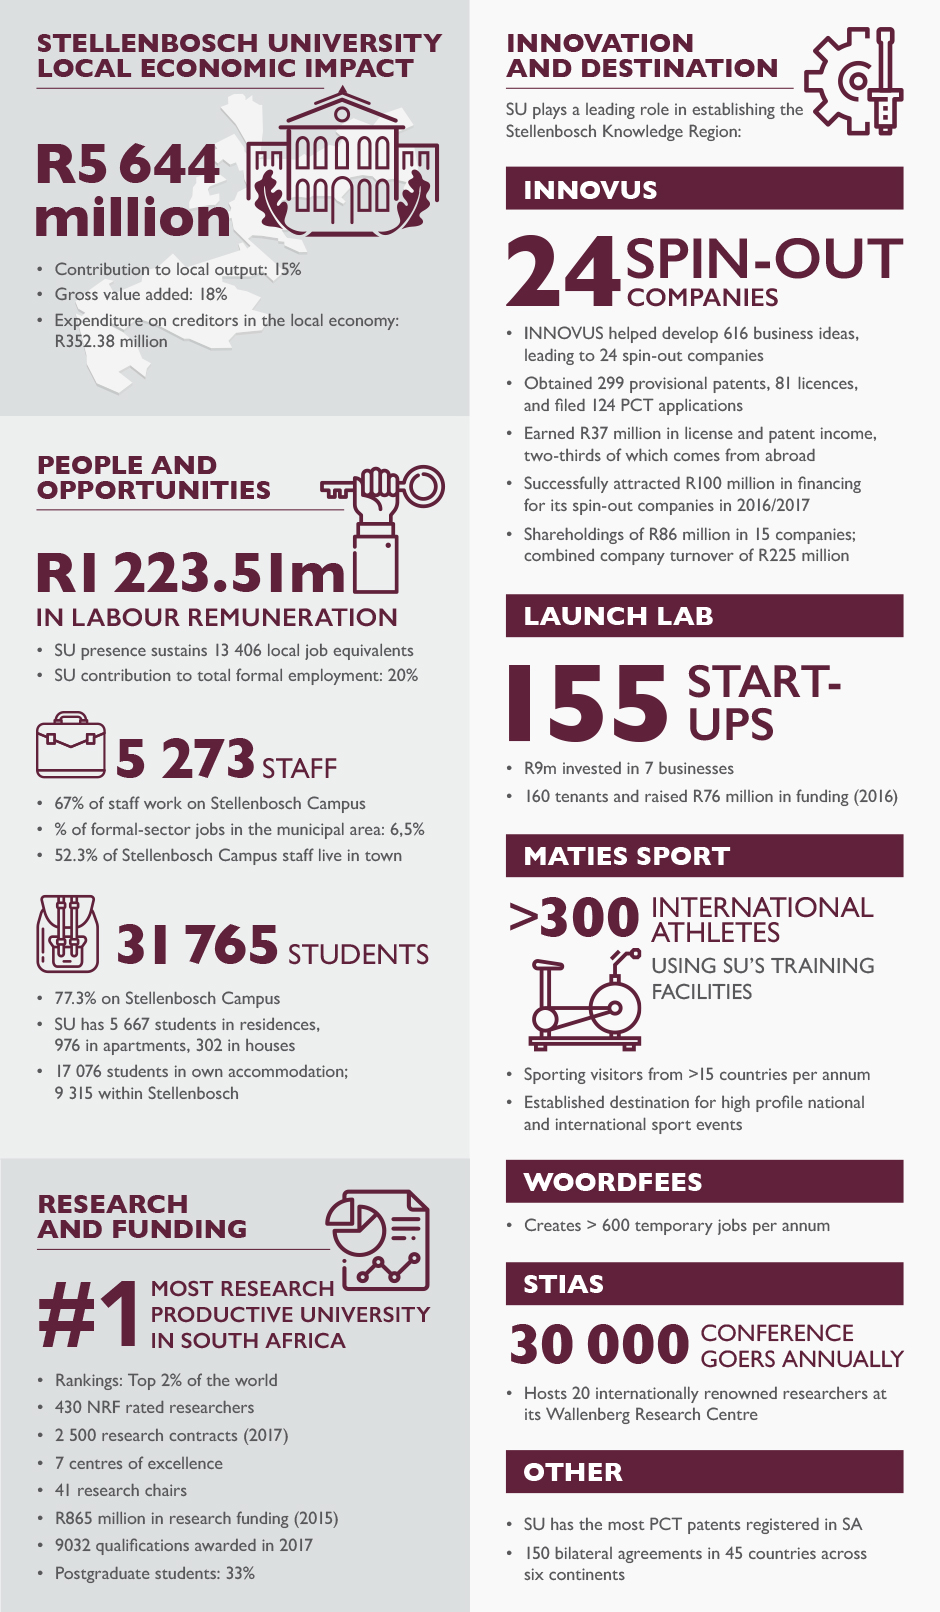 SU_Regional_Economic_Impact_infographic_detail.jpg